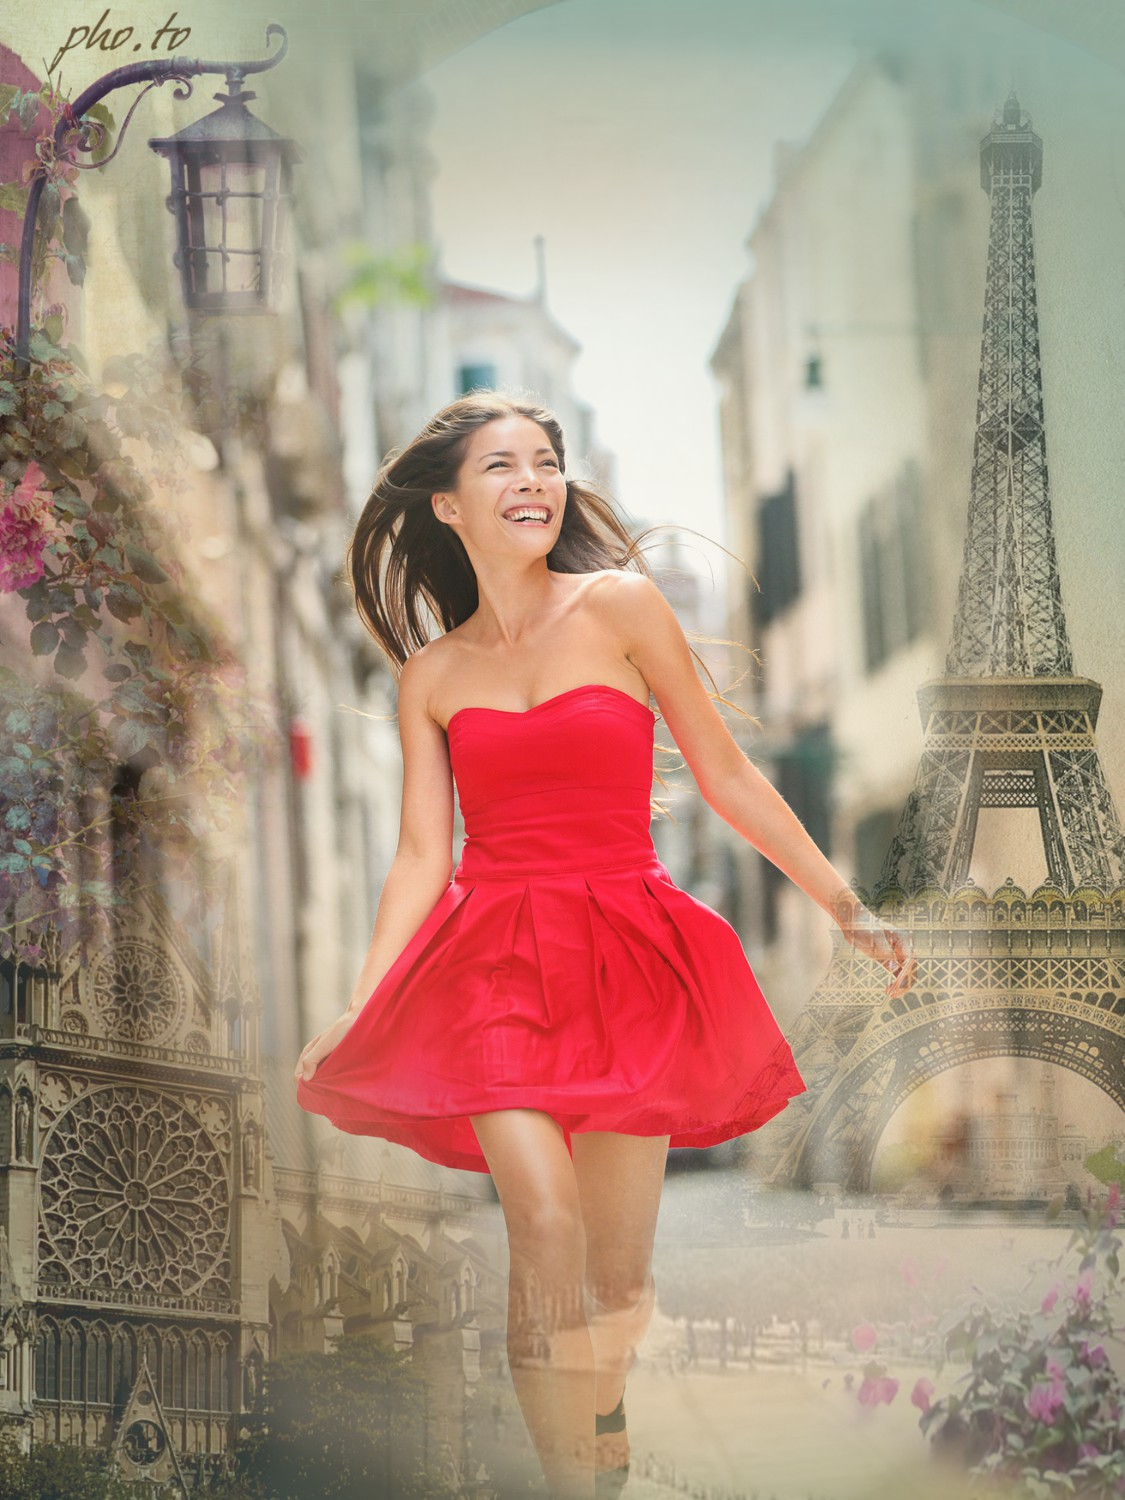 A girl's photo background has been replaced with romantic Paris effect.